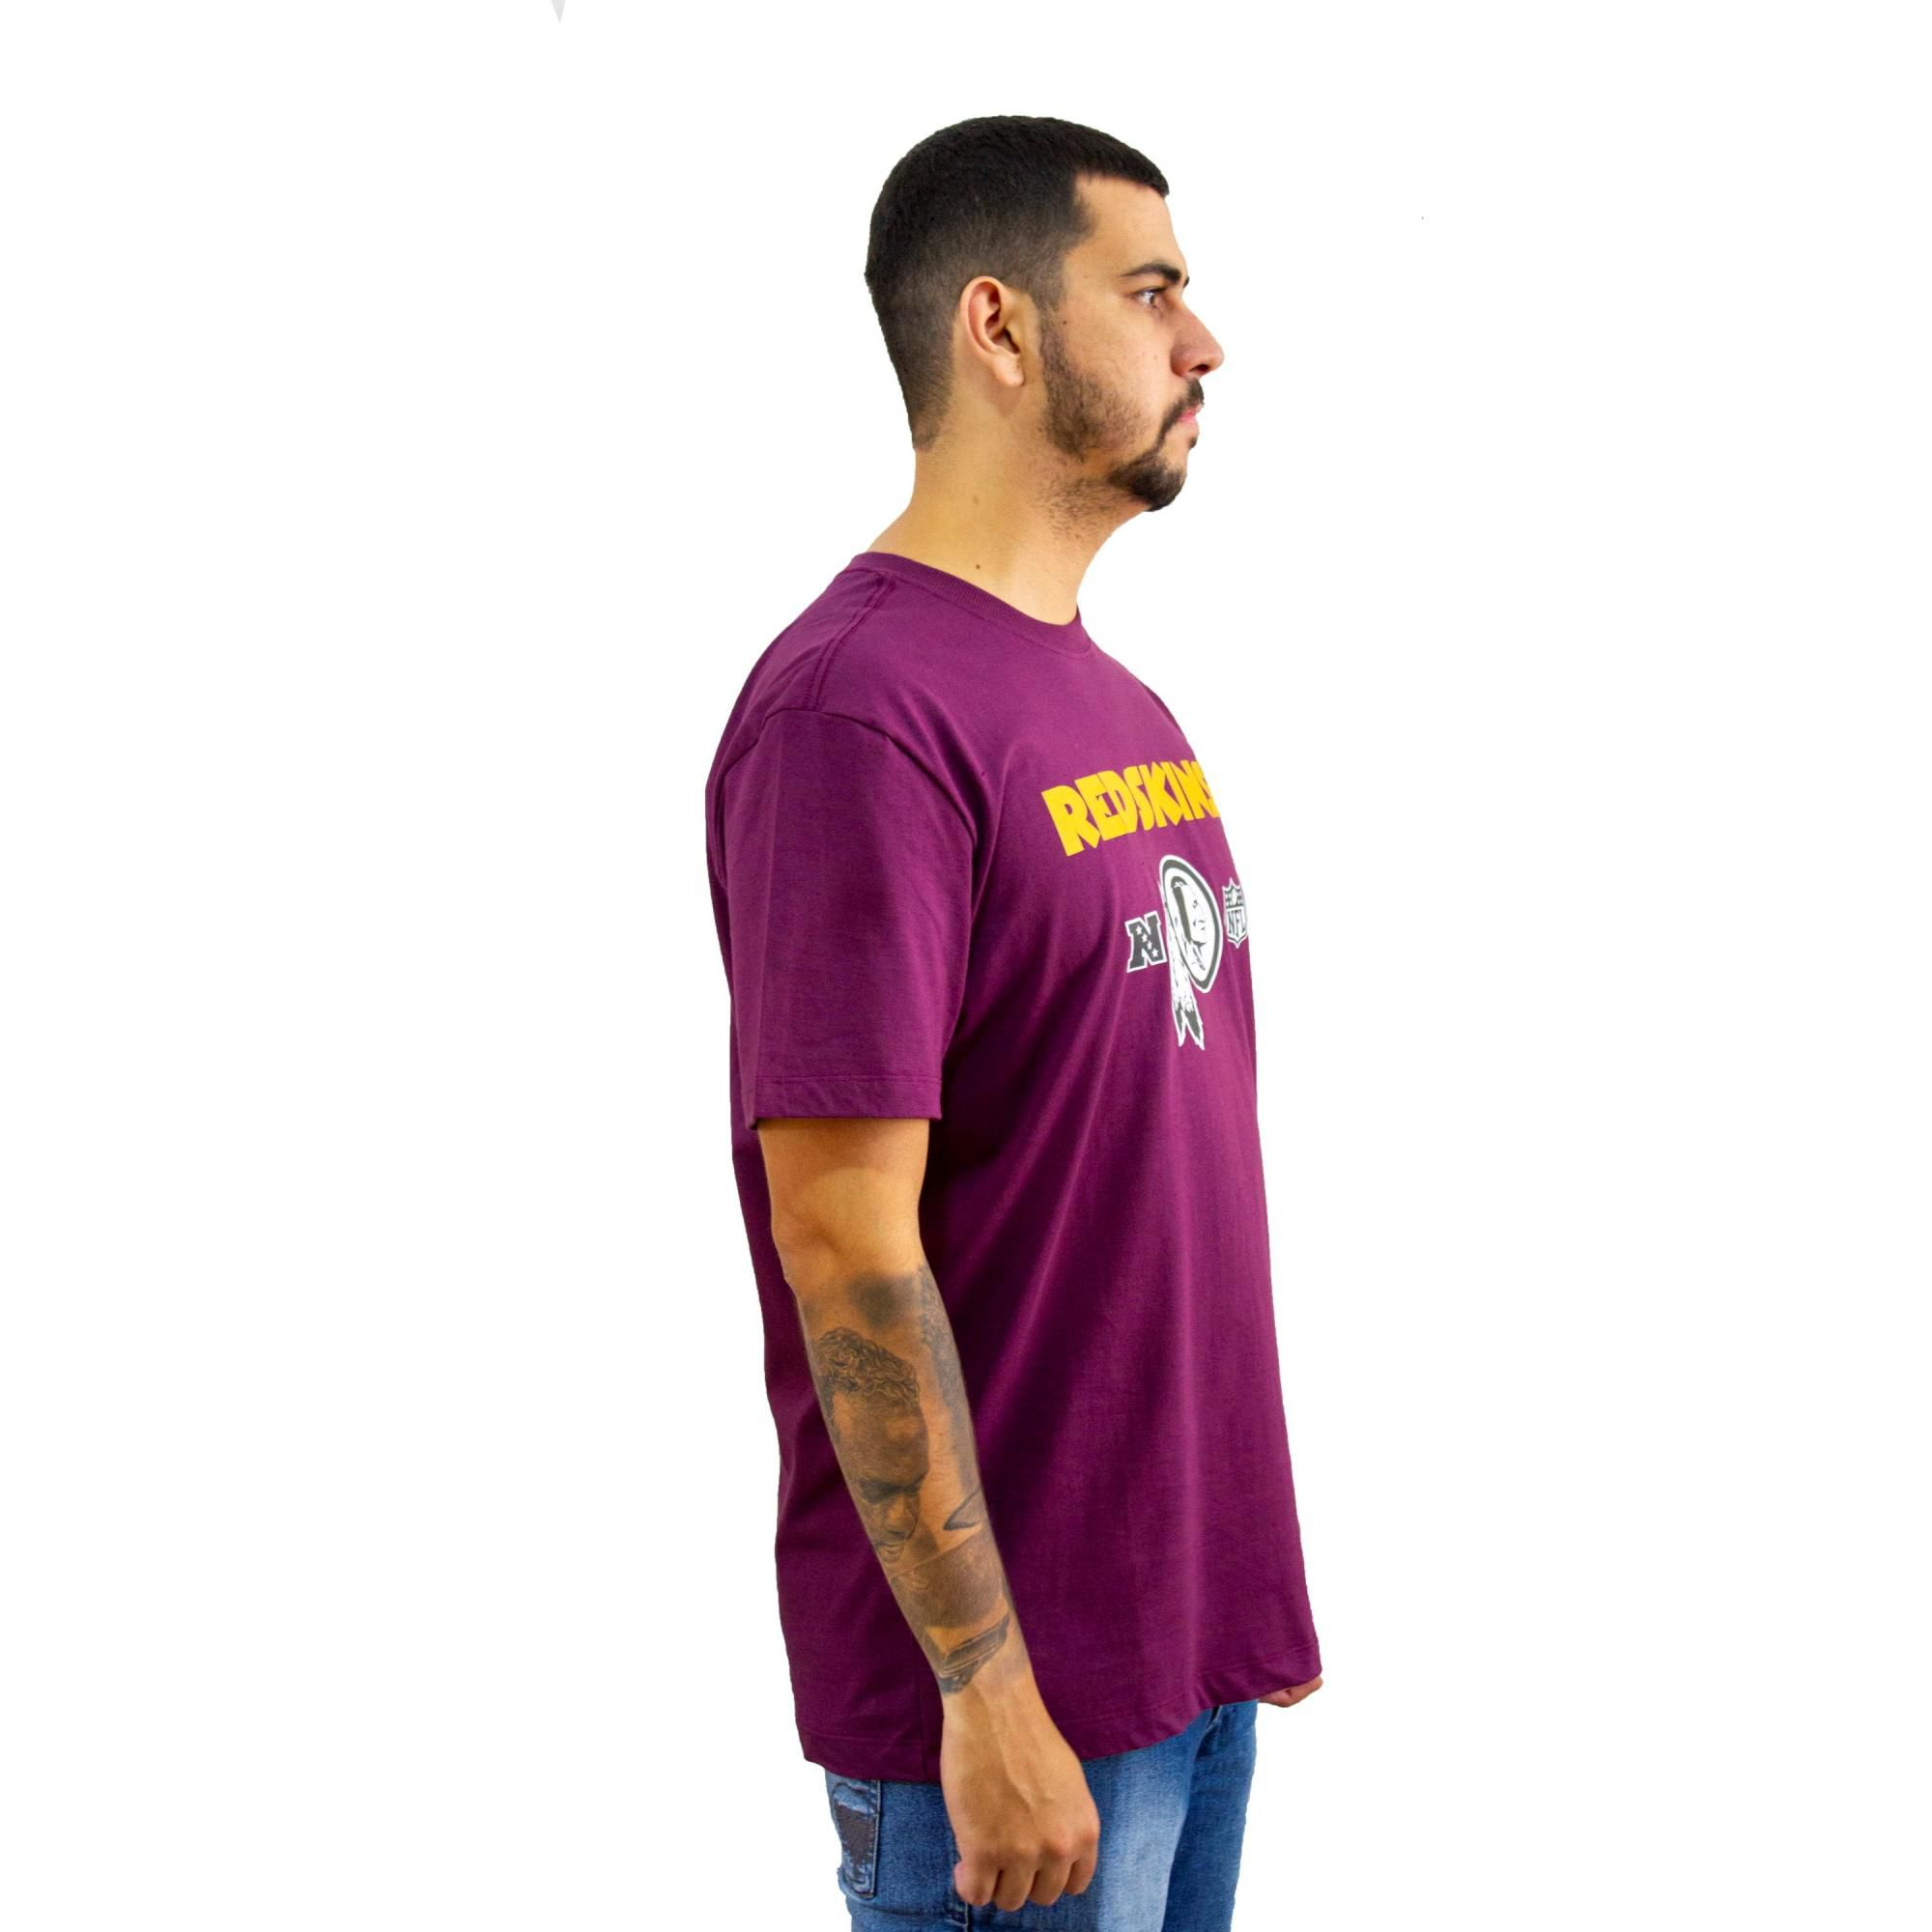 Camiseta New Era NFL Redskins